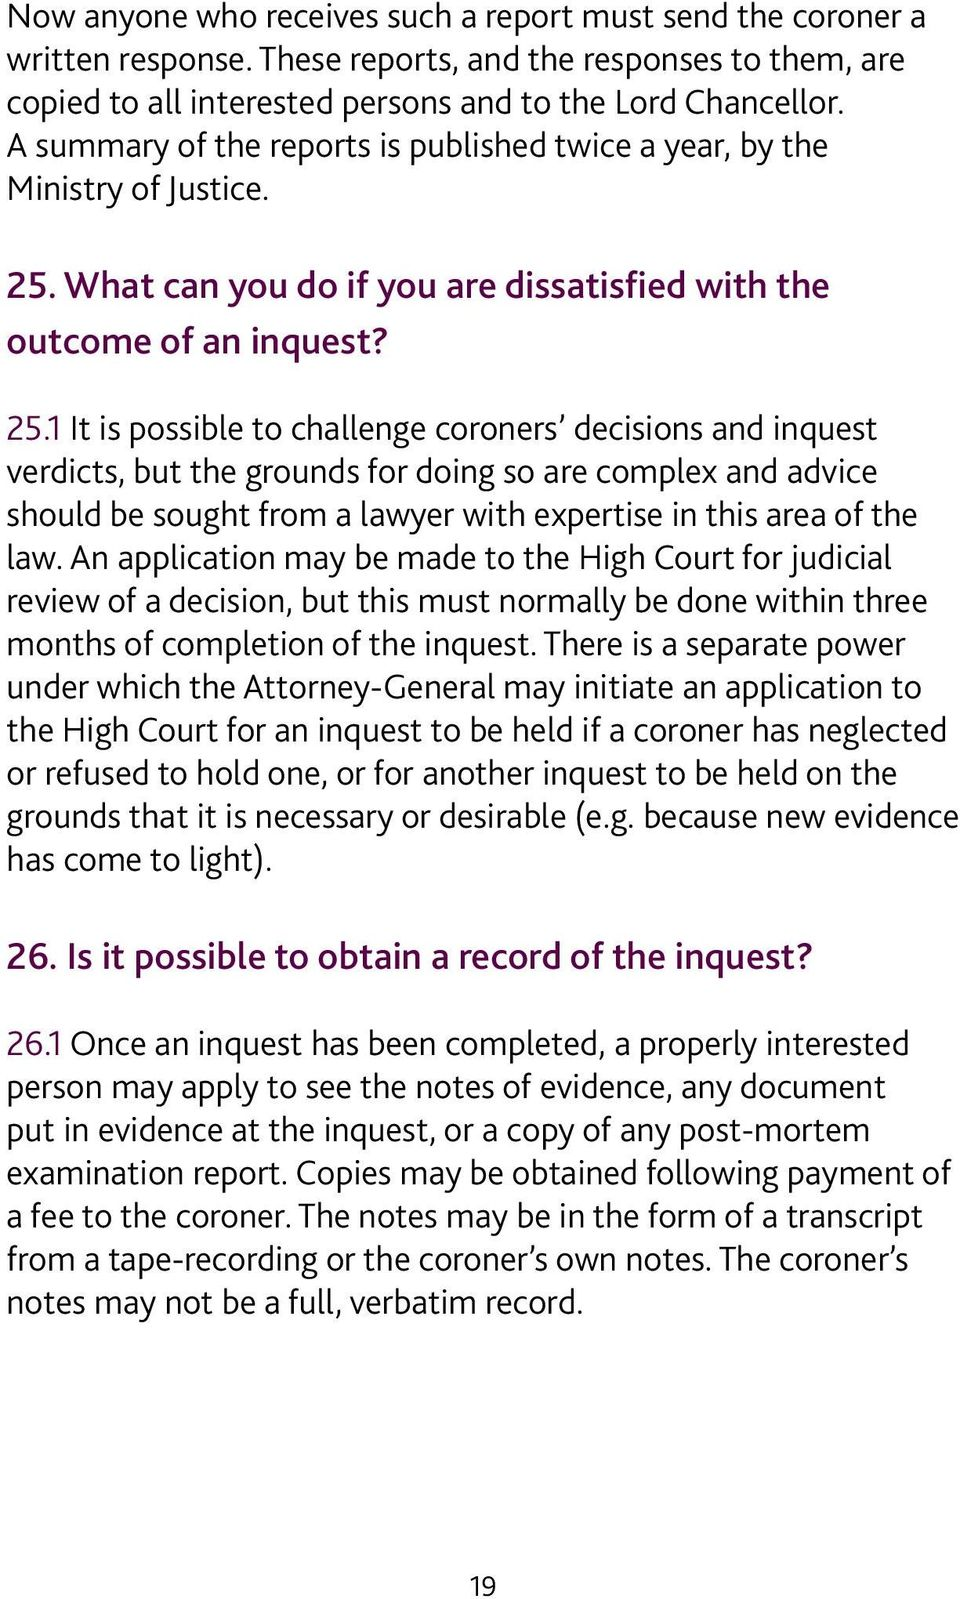 What can you do if you are dissatisfied with the outcome of an inquest? 25.